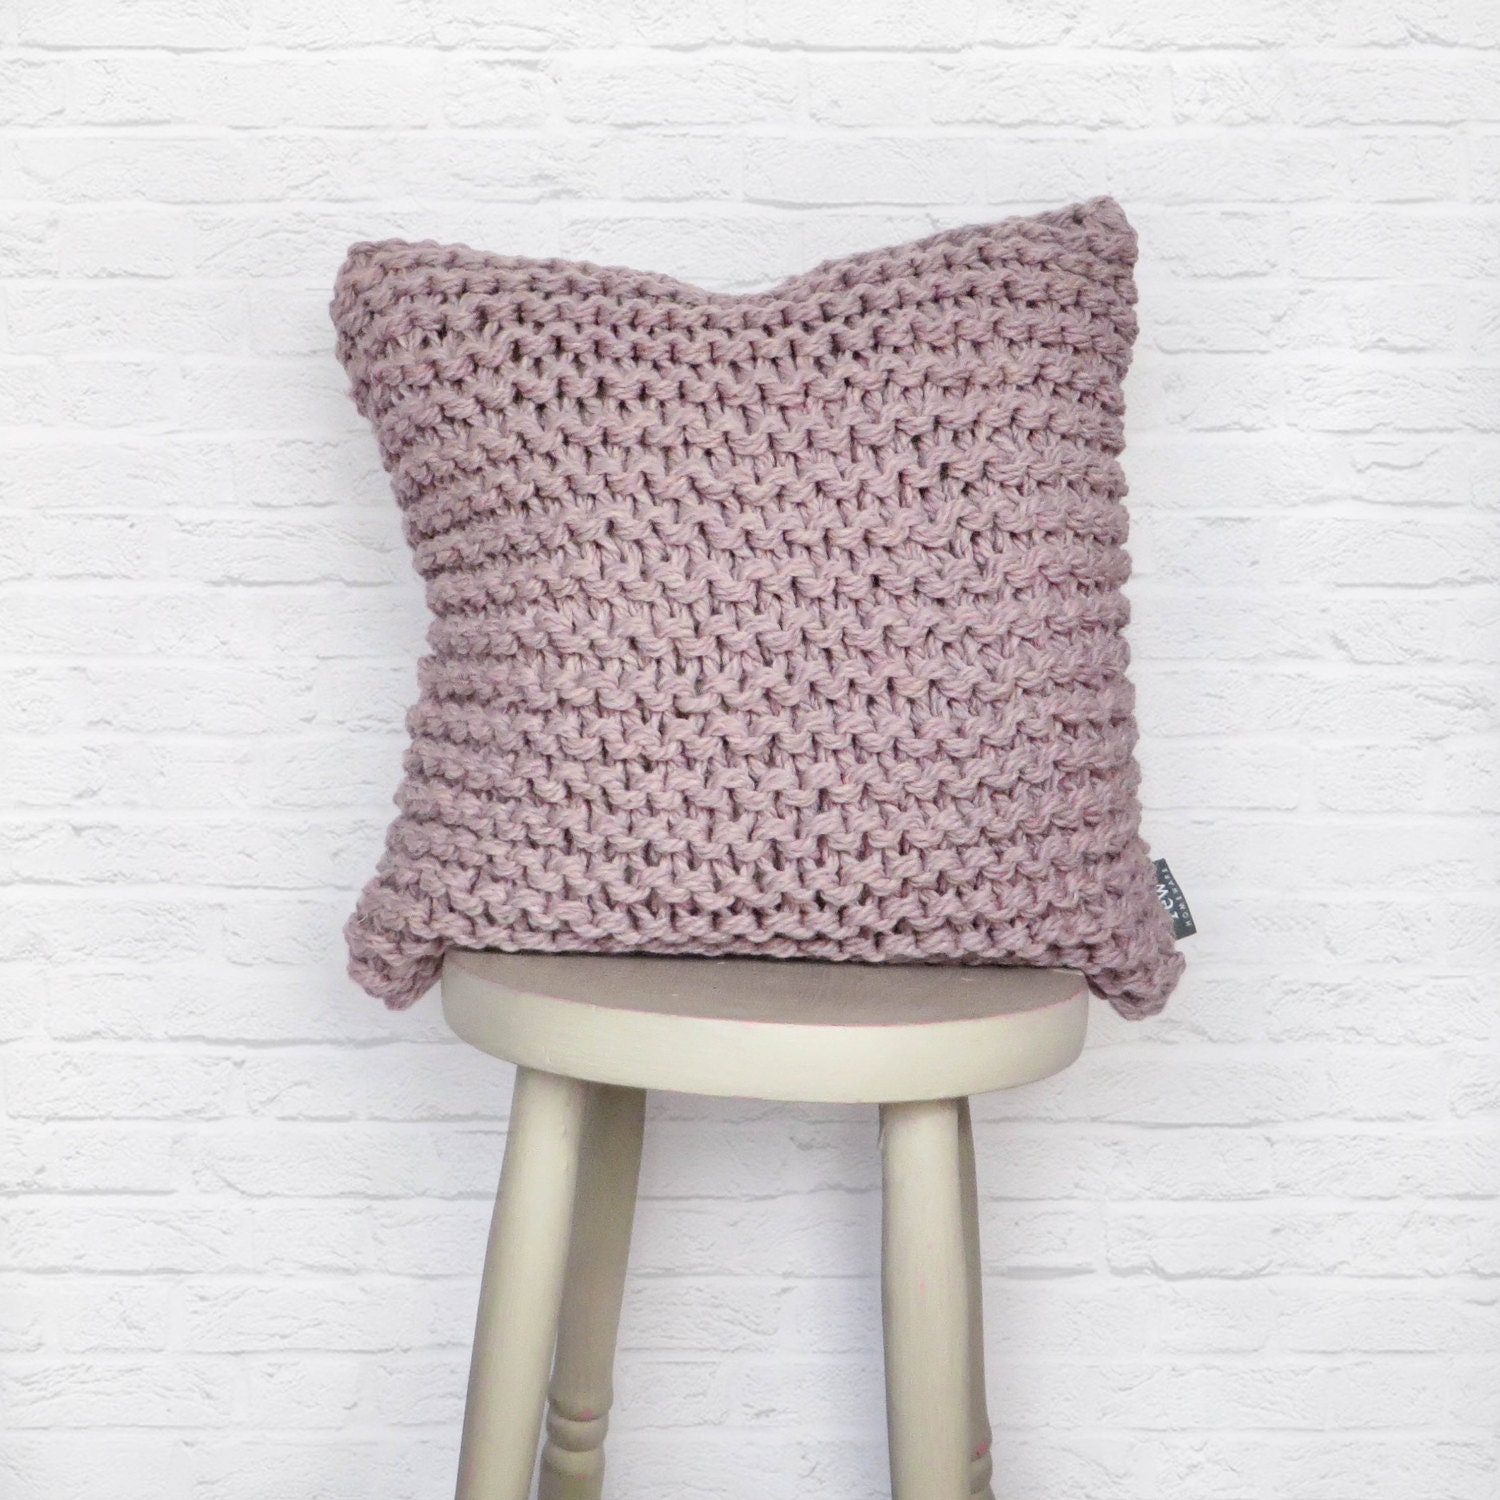 Knitted Infinity Scarves Patterns : Chunky Knit Cushion Pillow Chunky Garter Cushion in Lilac Rose